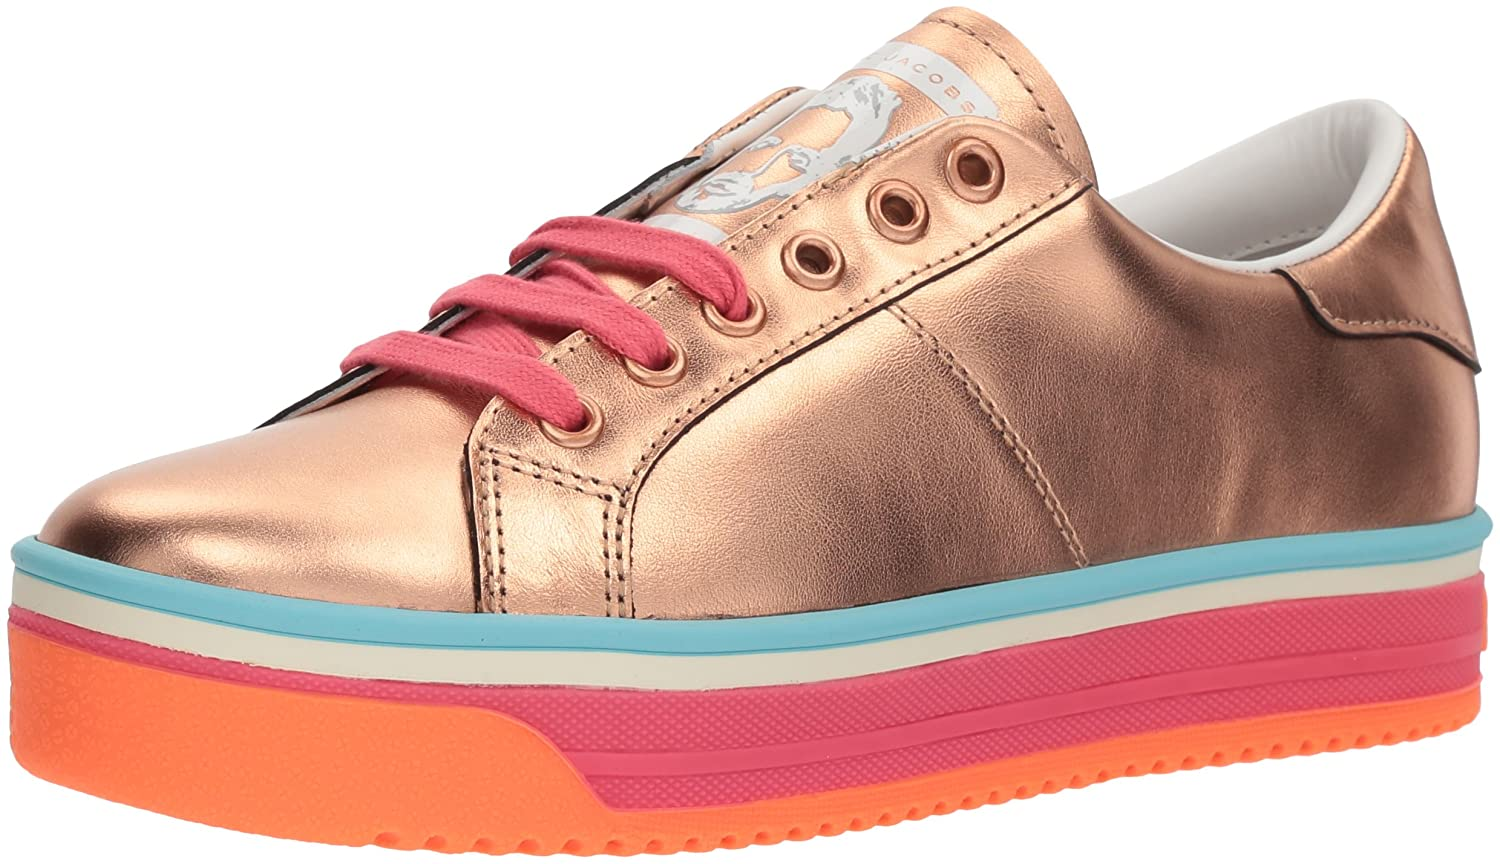 Marc Jacobs Women's Empire Multi Color Sole Sneaker B075Y62HHN 37 M EU (7 US)|Rose Gold/Hot Pink/Multi